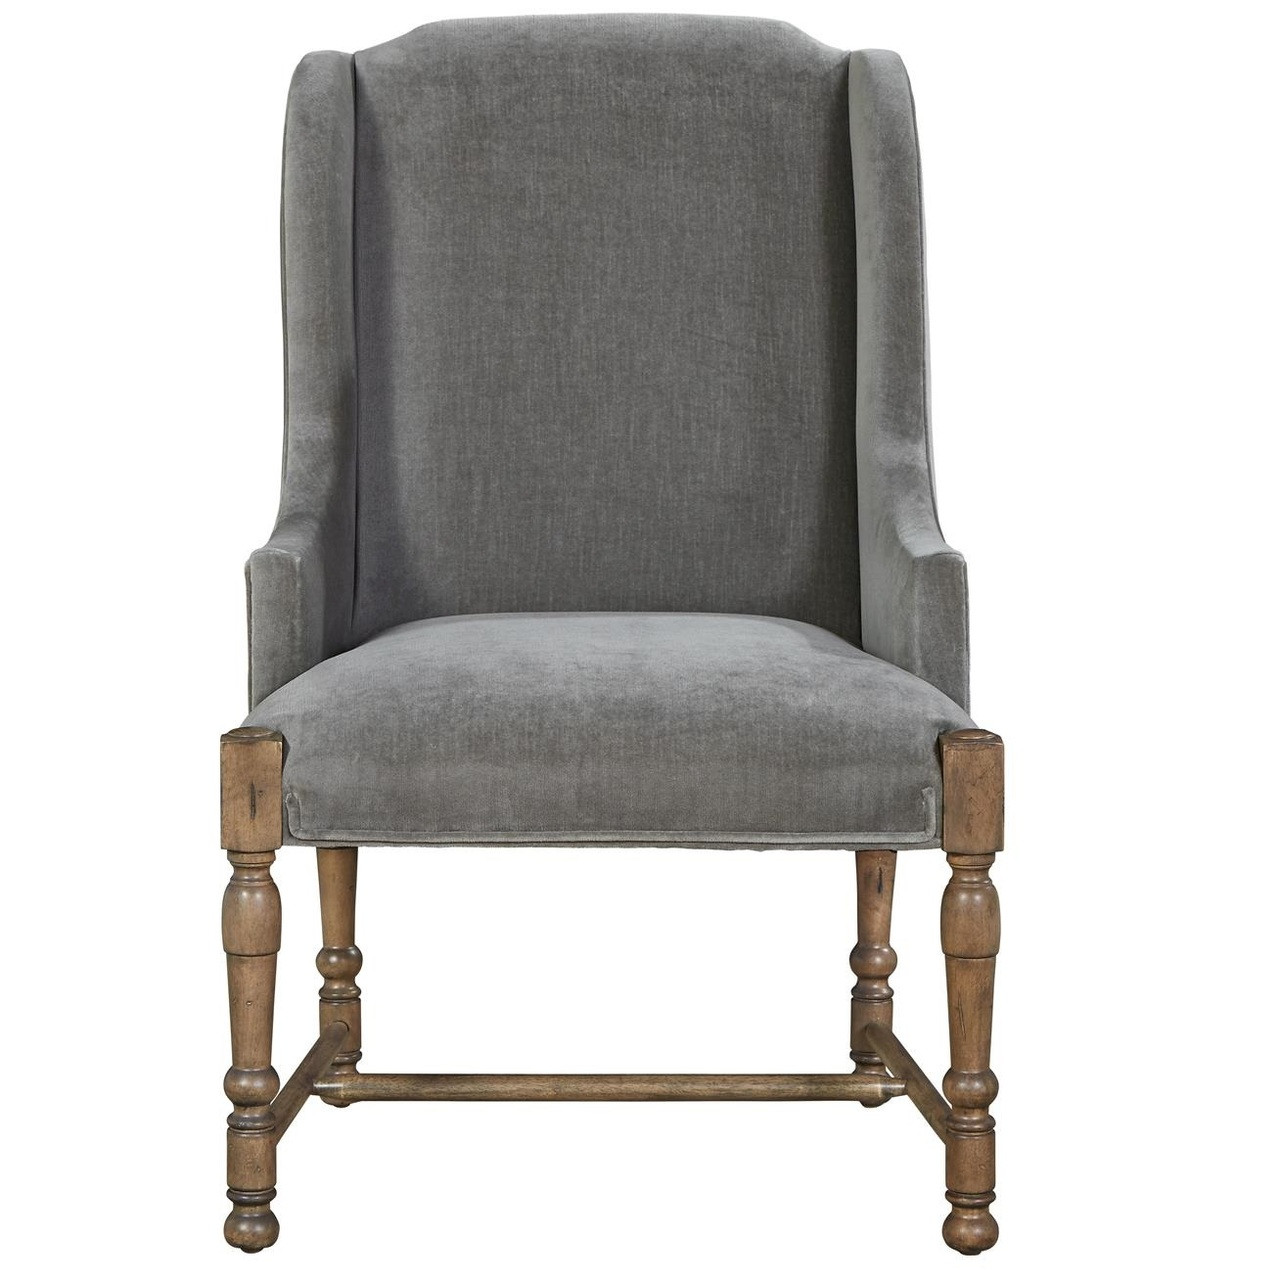 french velvet chair design architects country gray upholstered host arm